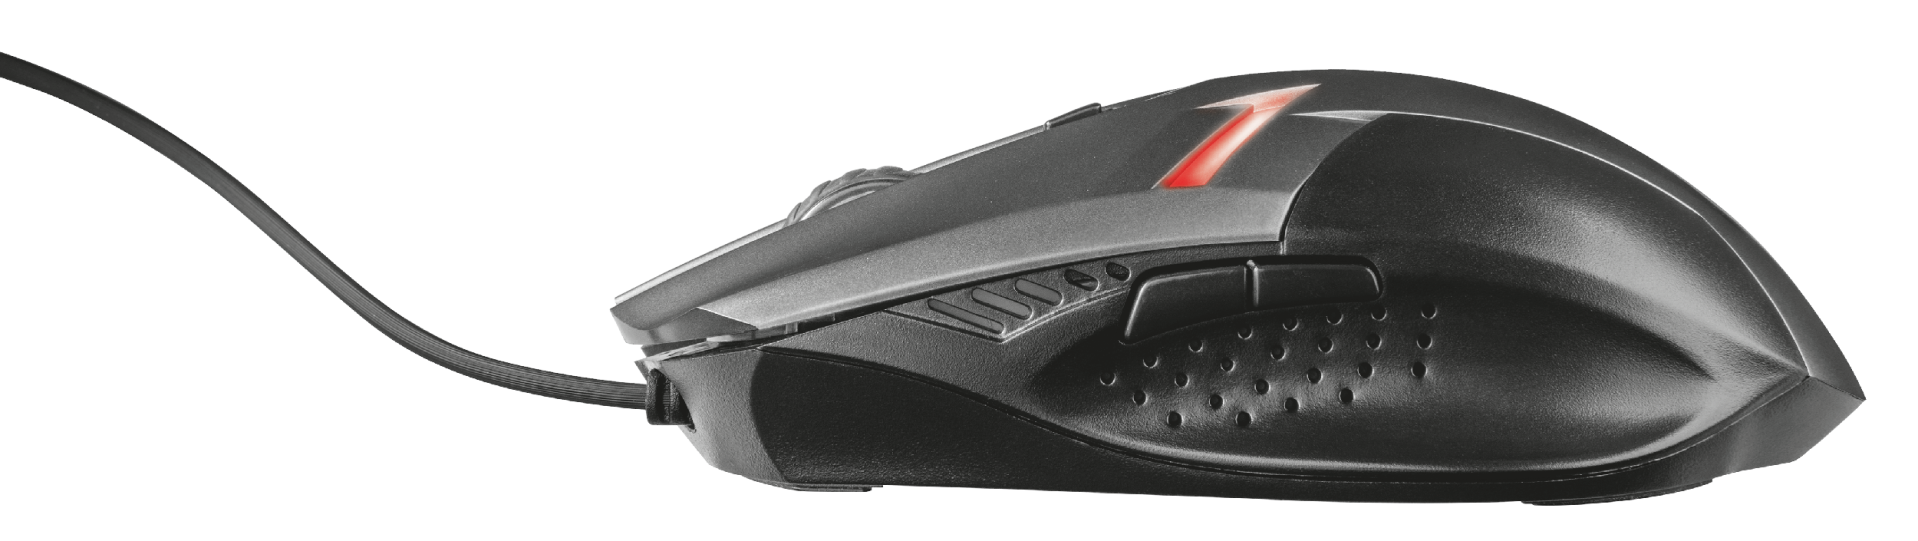 Ziva Gaming Mouse-Side